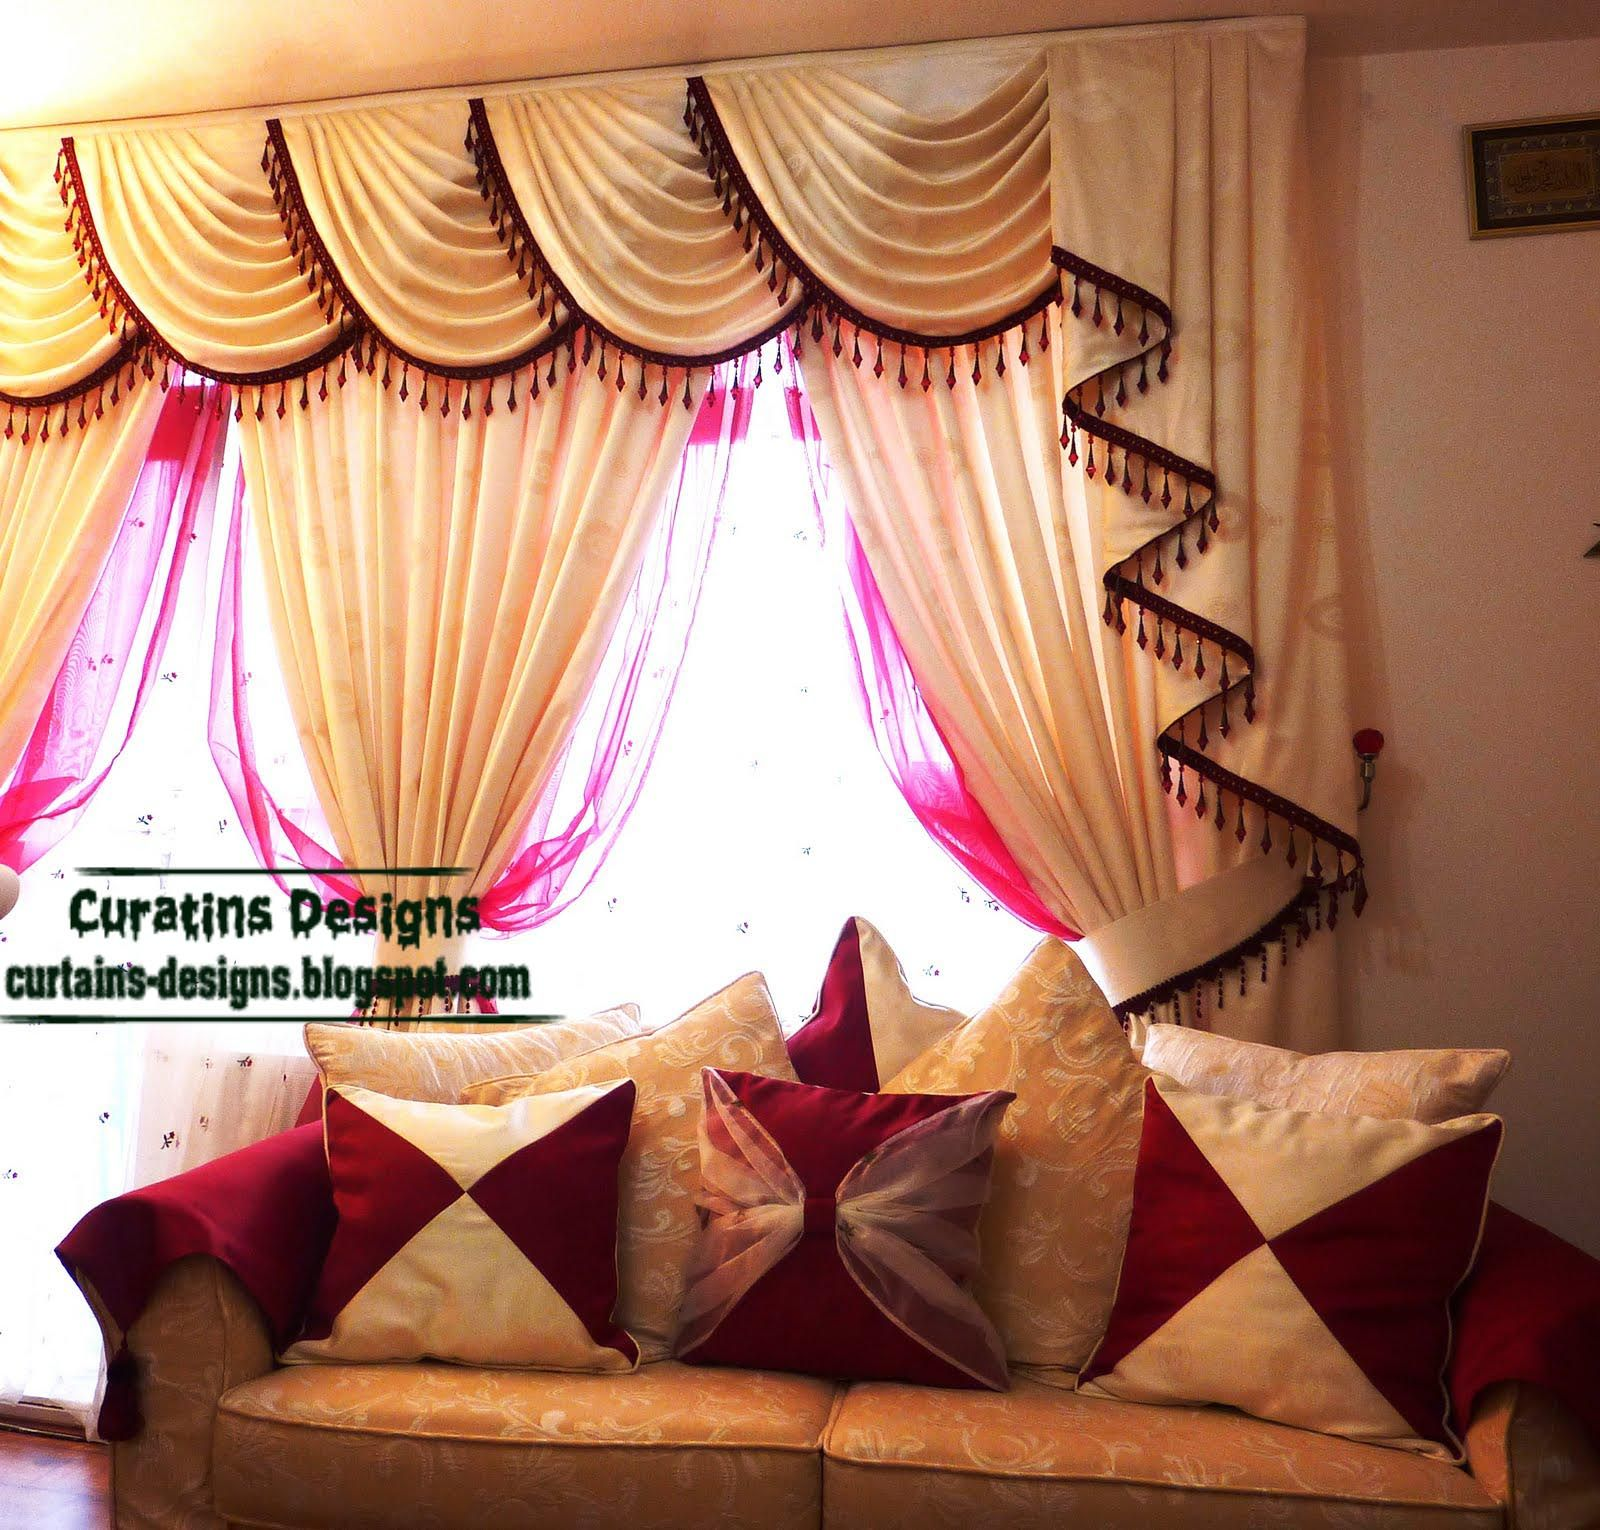 Curtain Design For Living Room Awesome Decorating Design